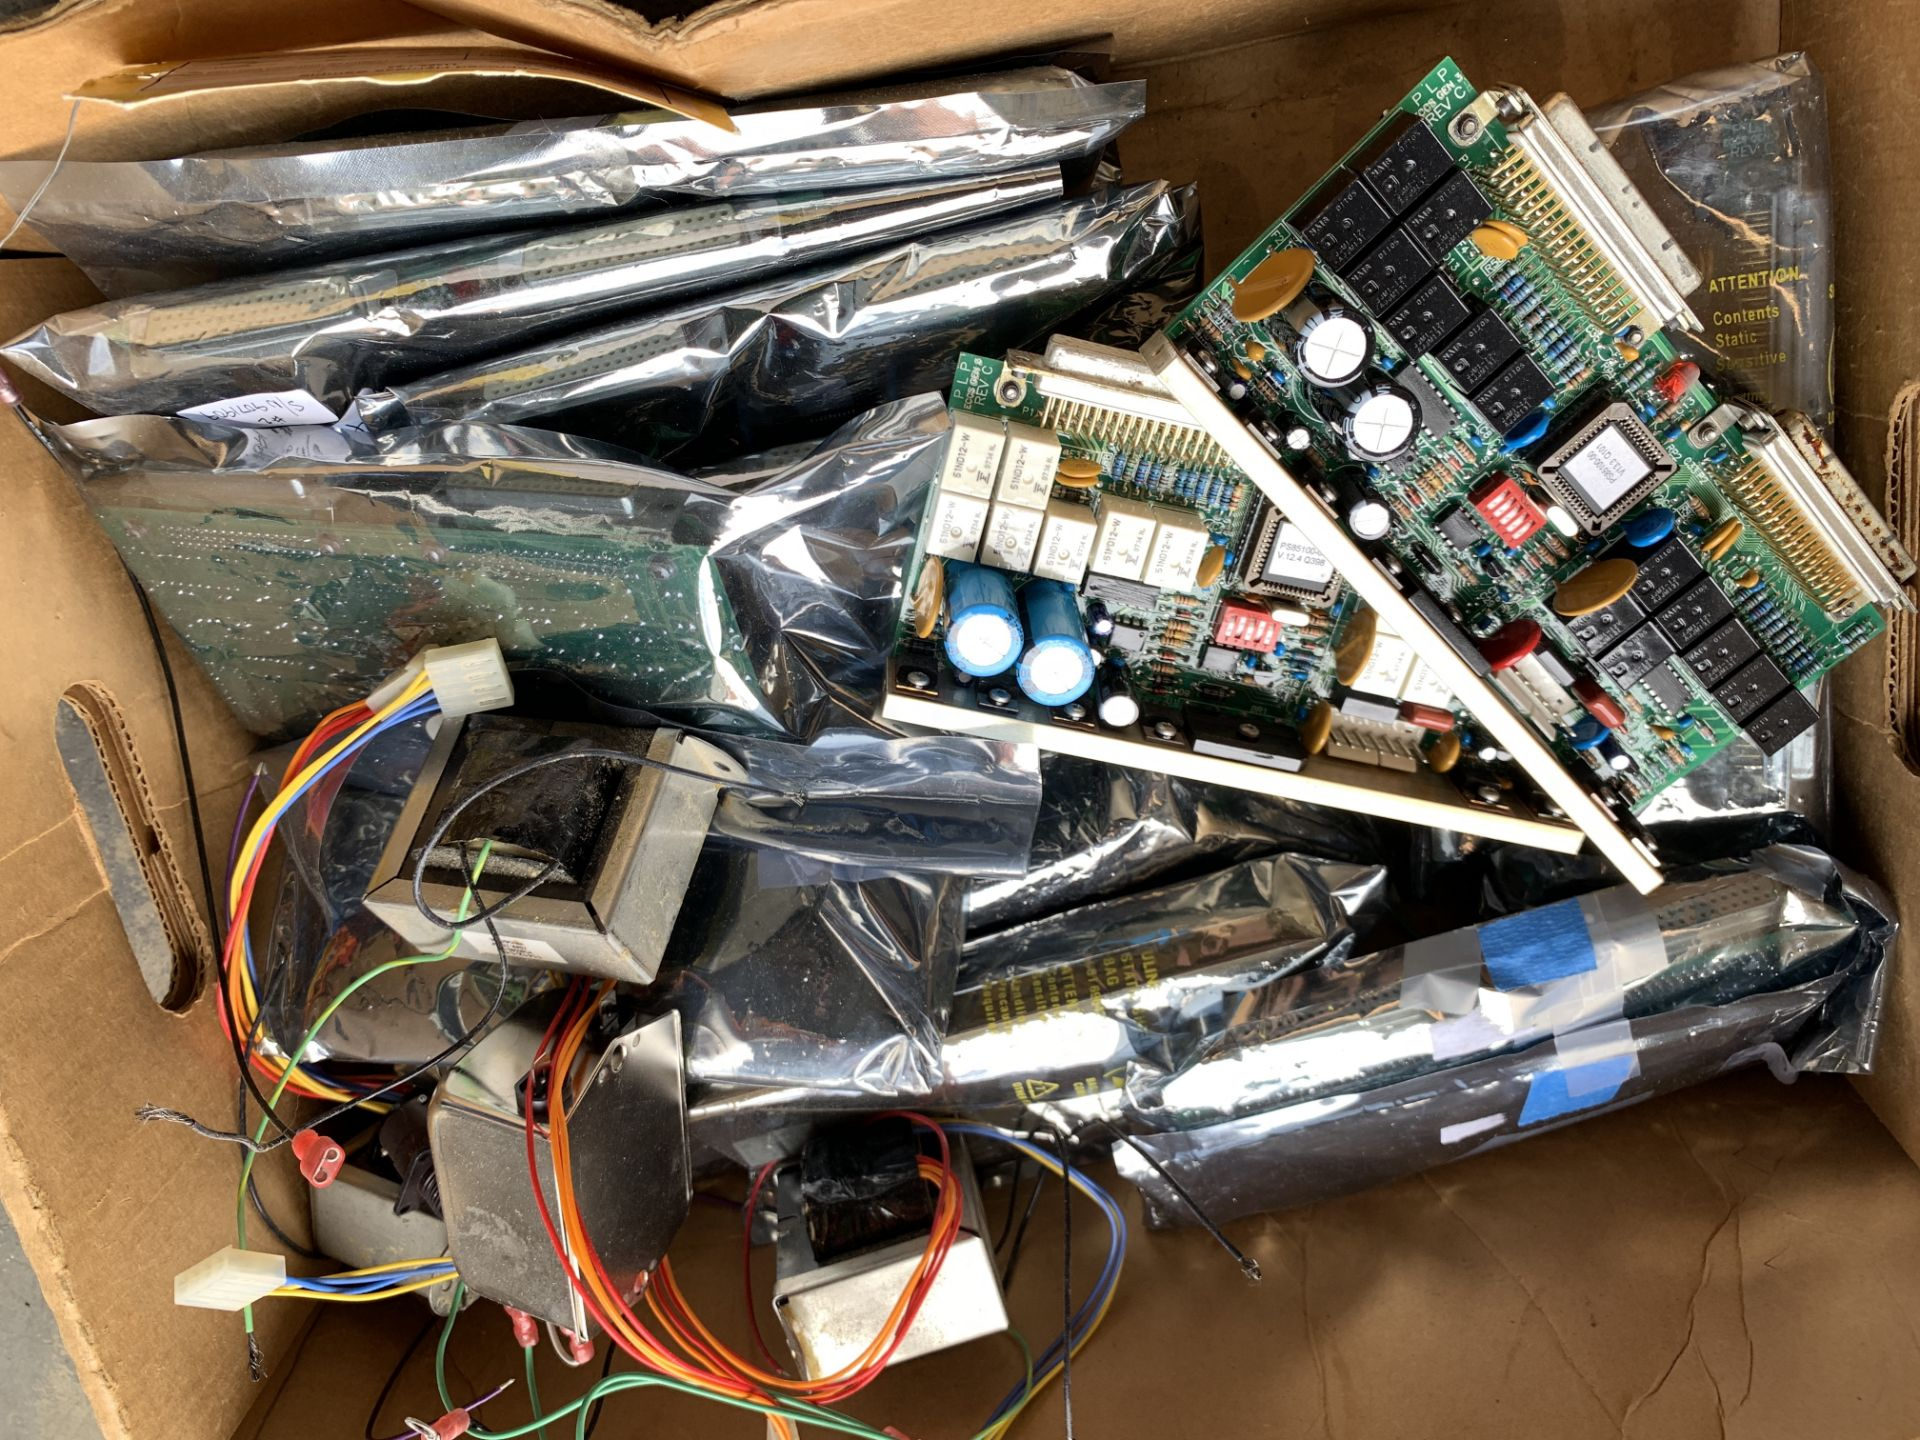 Lot 215 - Mixed lot of Computer Boards, Components and Wiring, Ship from or pick up in Los Angeles